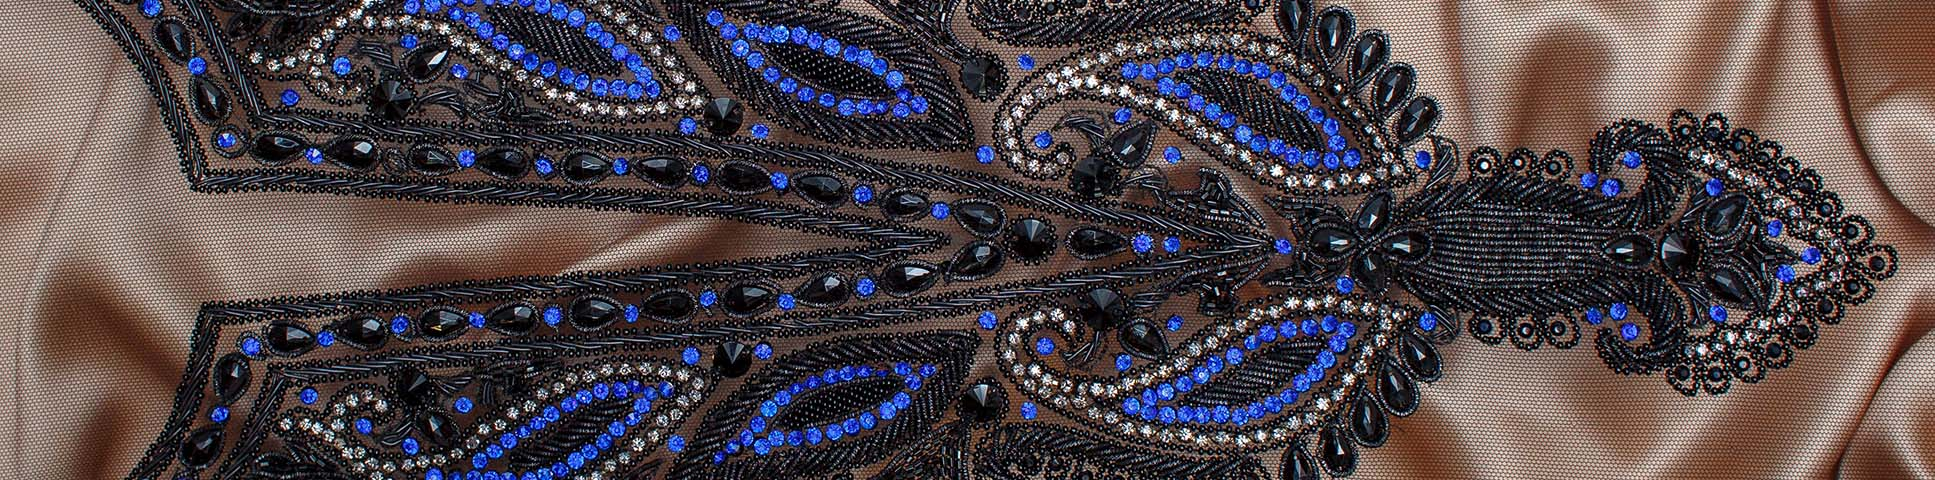 Blue decorative embellishment